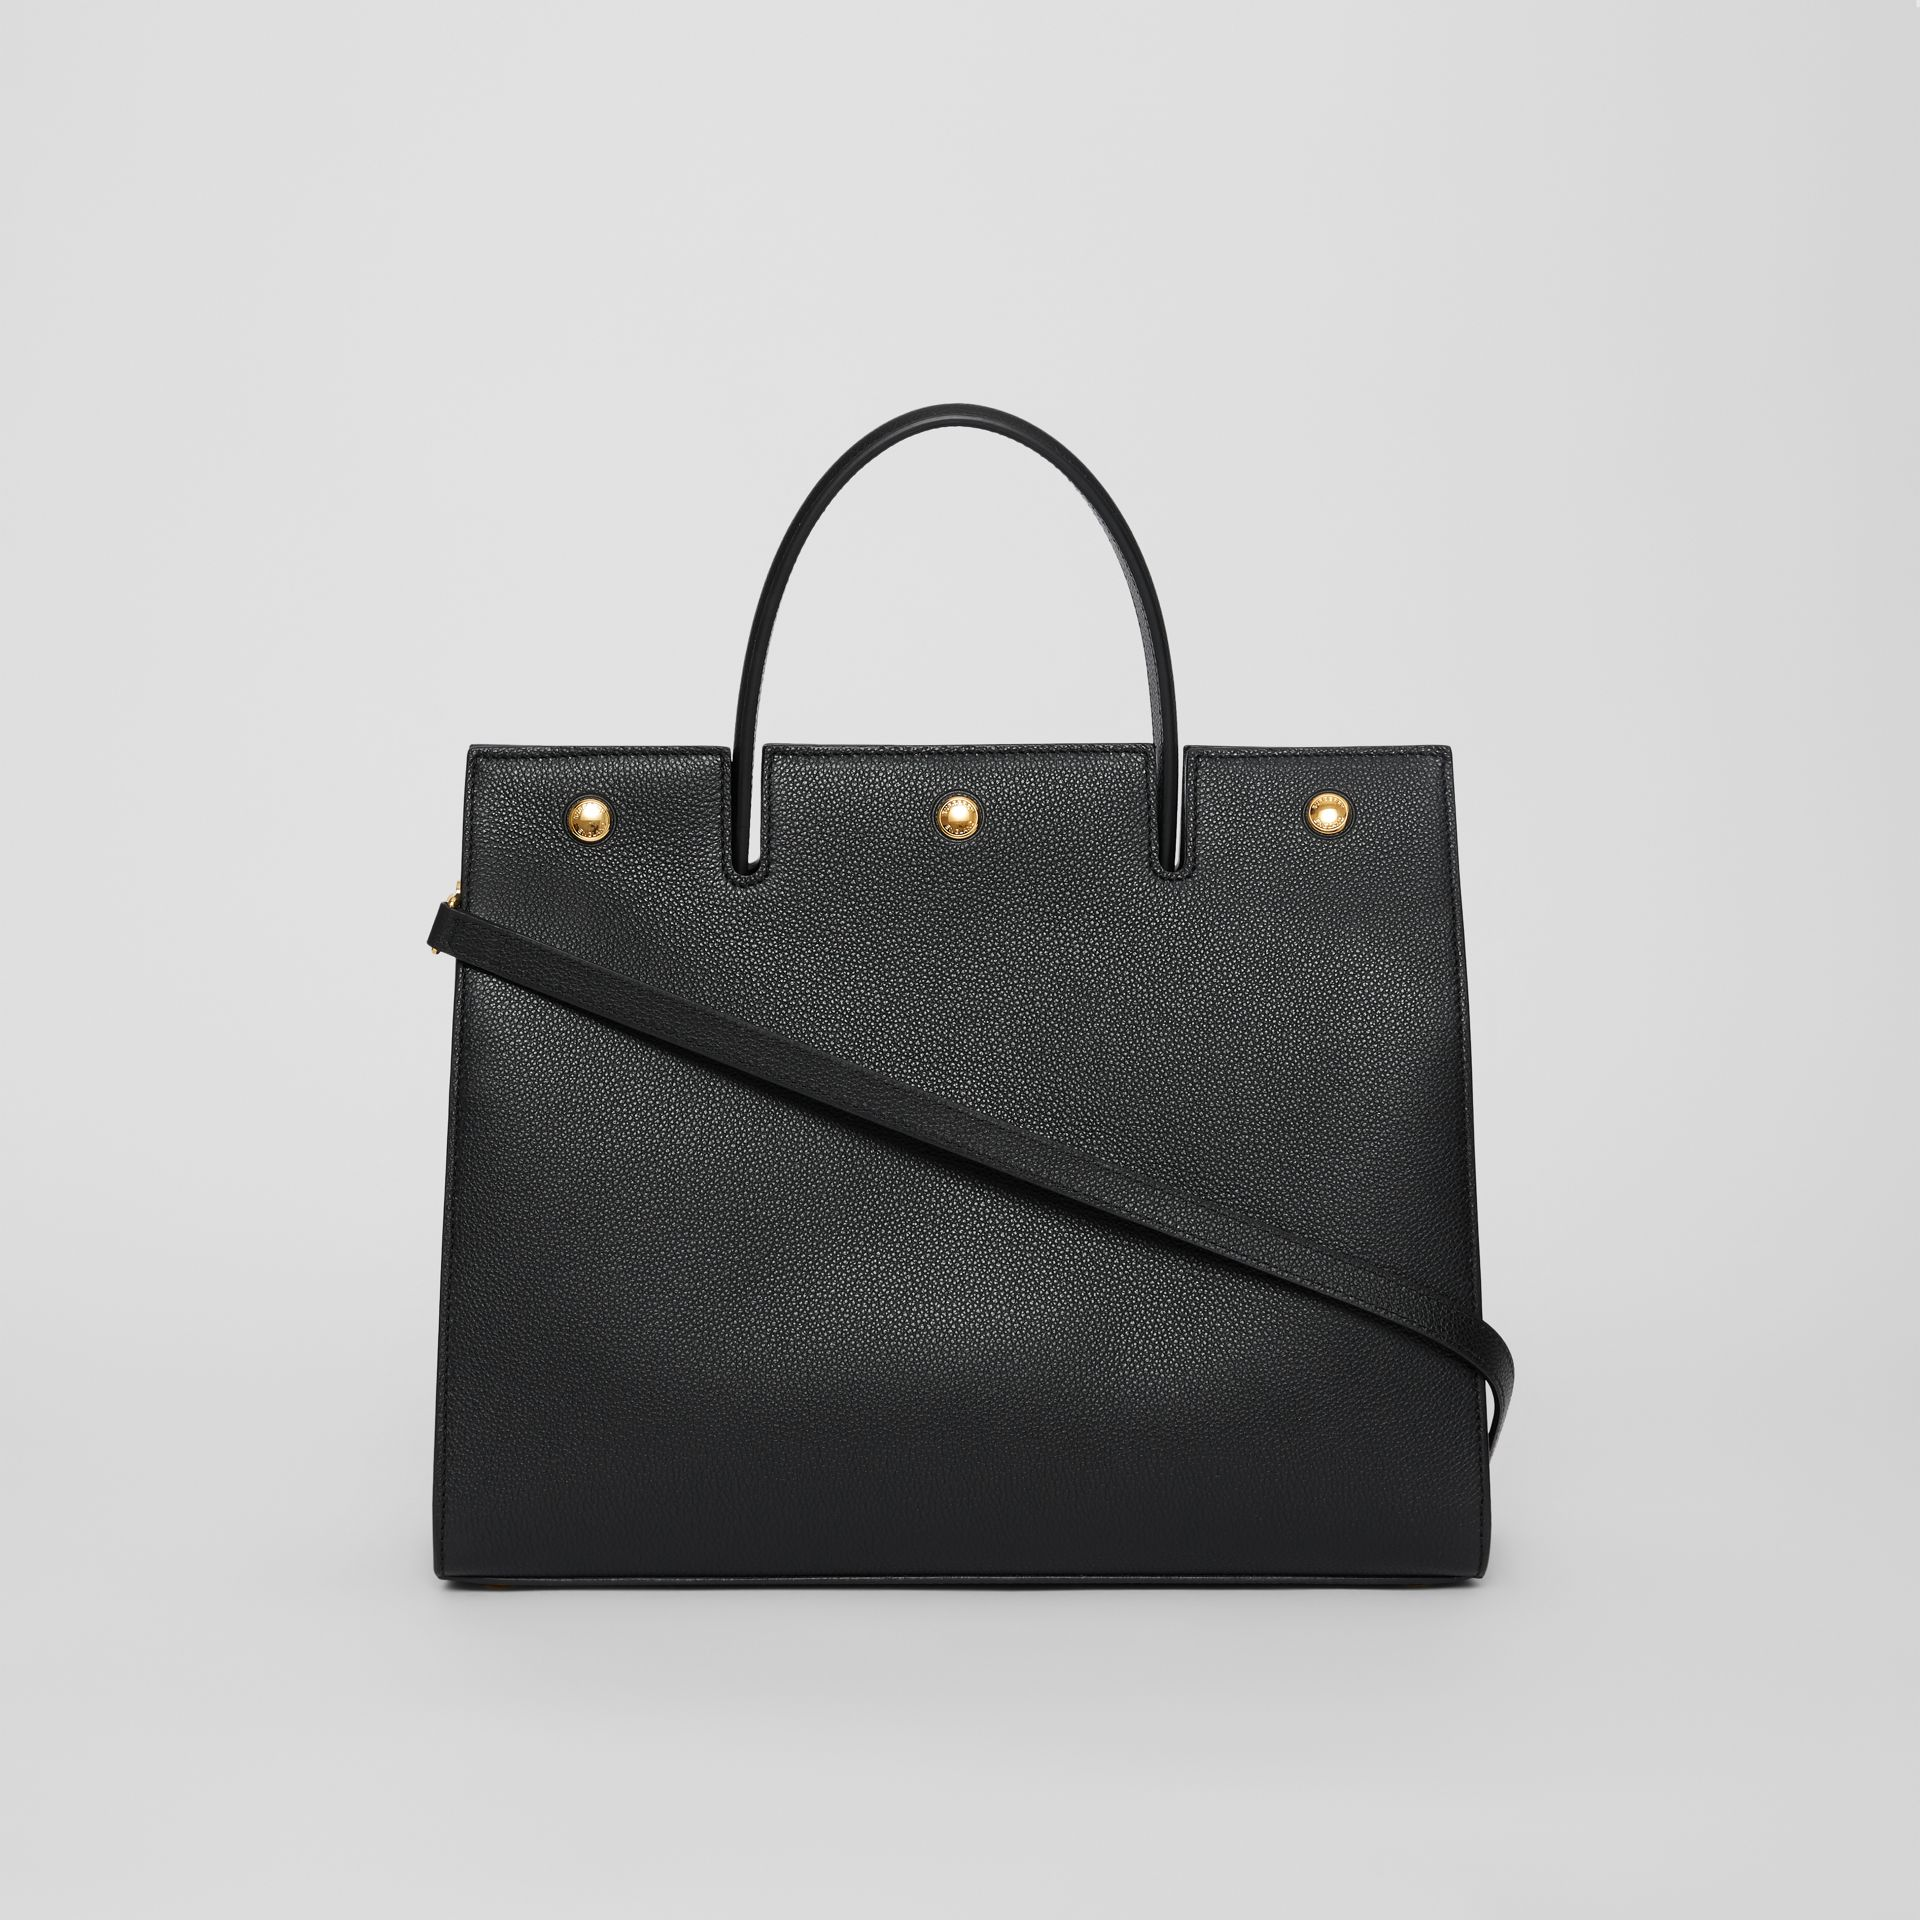 Medium Leather Title Bag in Black - Women | Burberry - gallery image 7